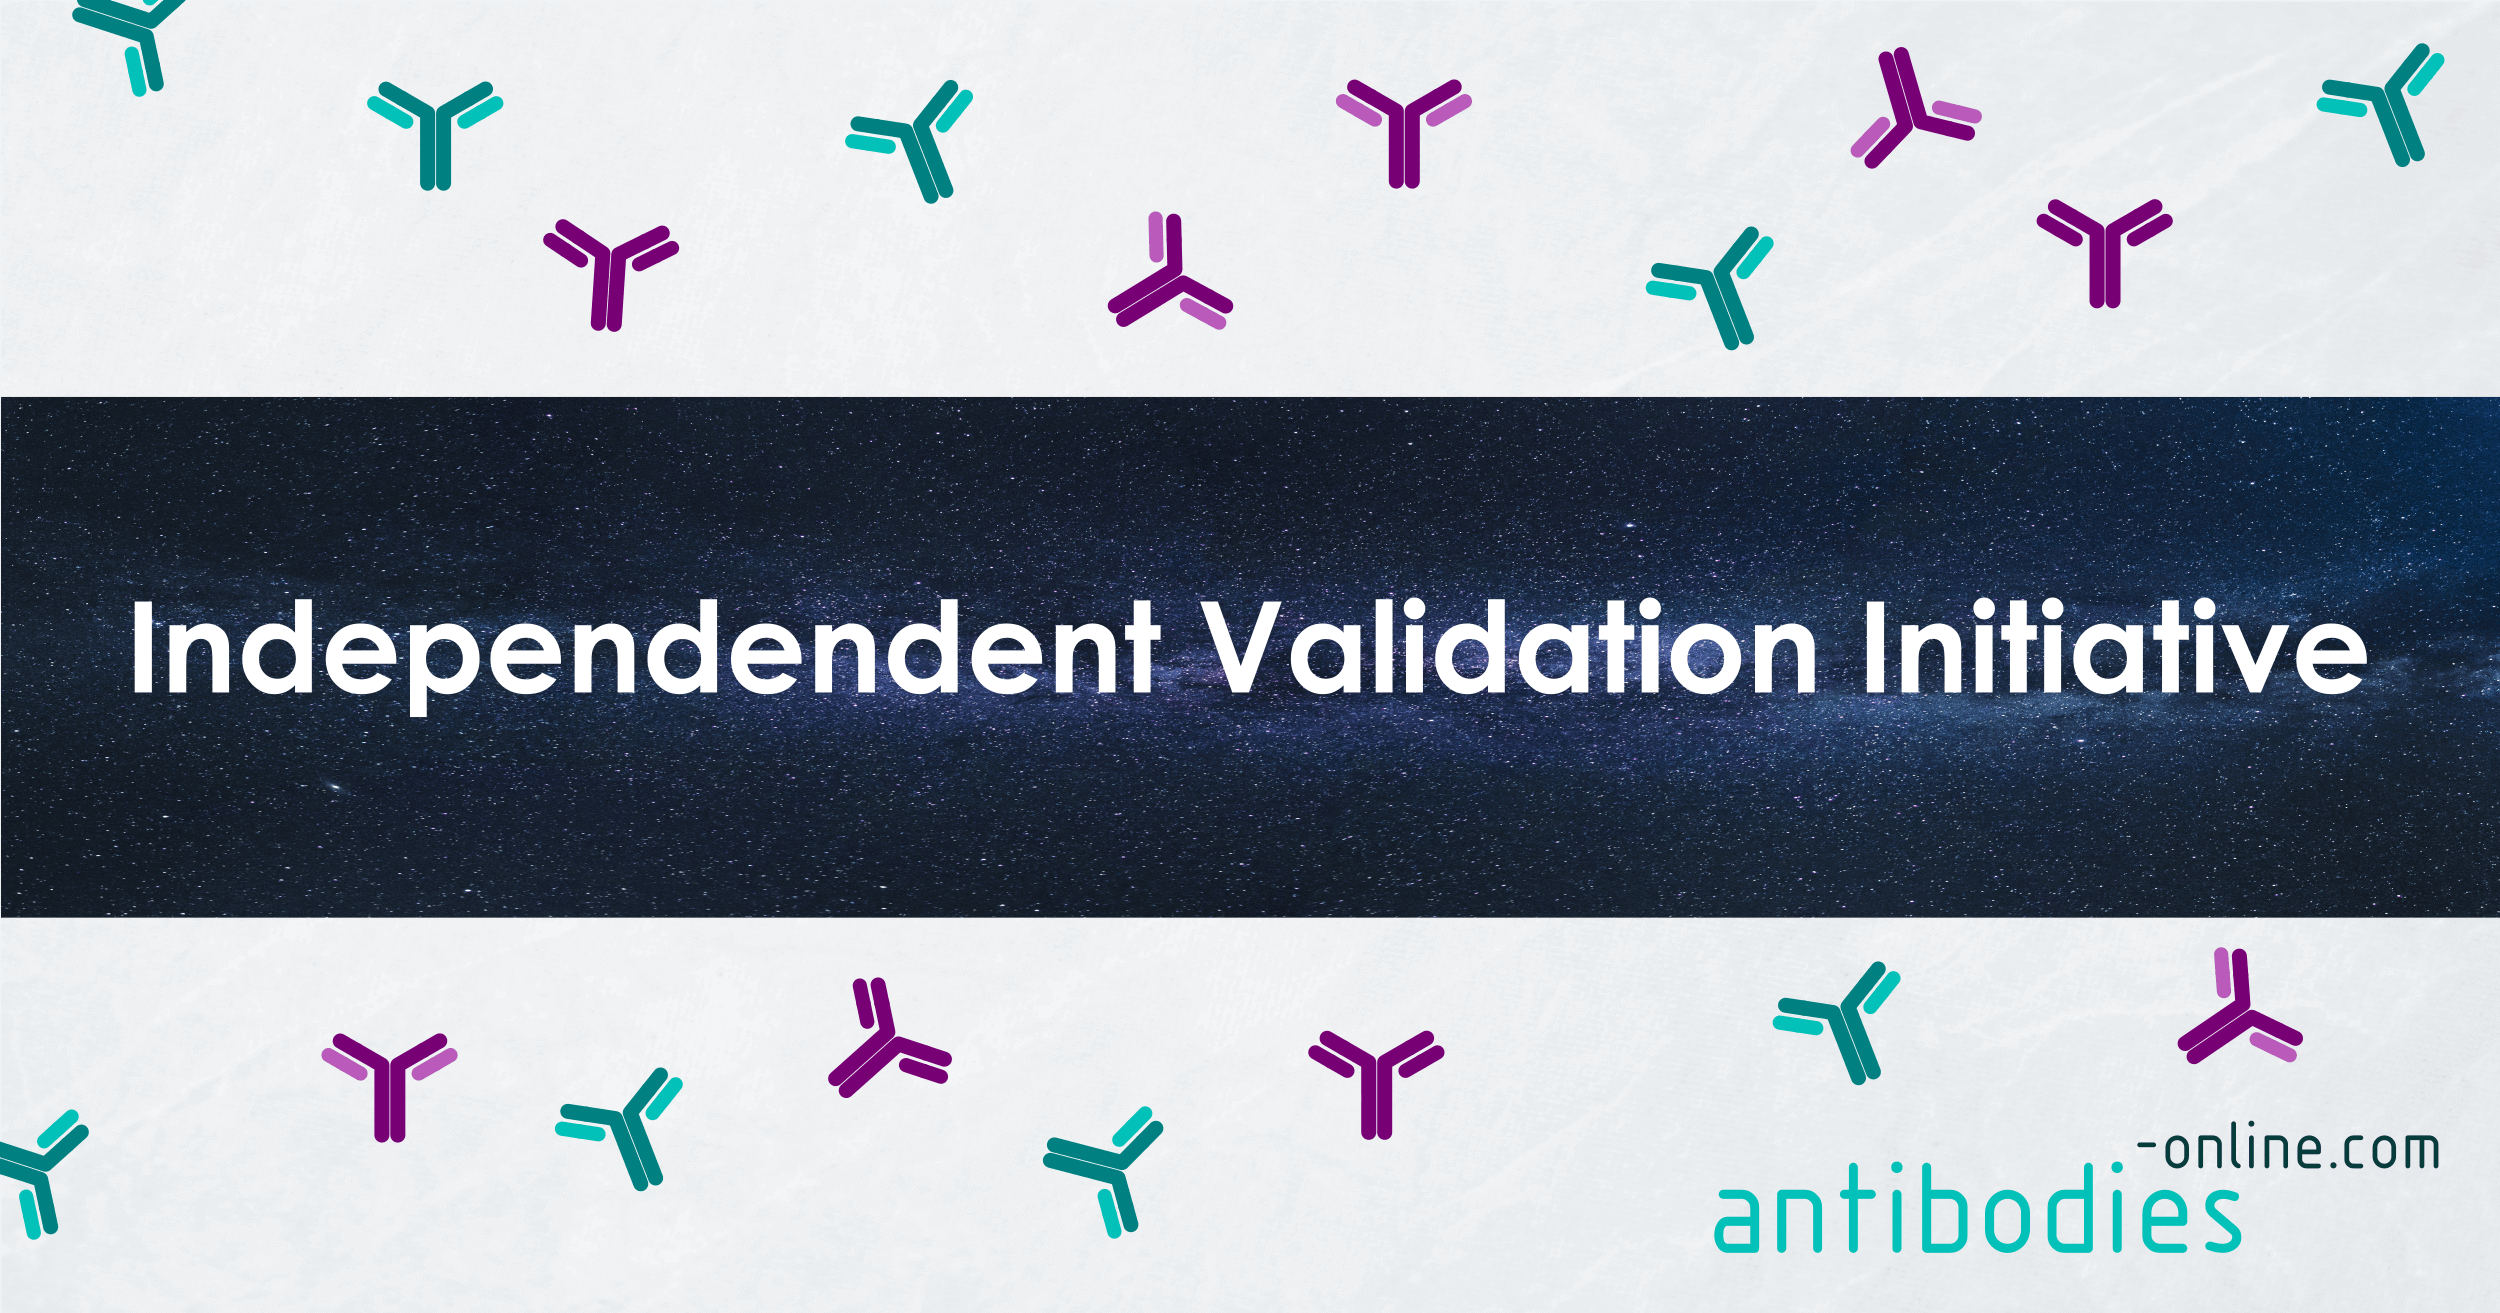 independent-validation-initiative